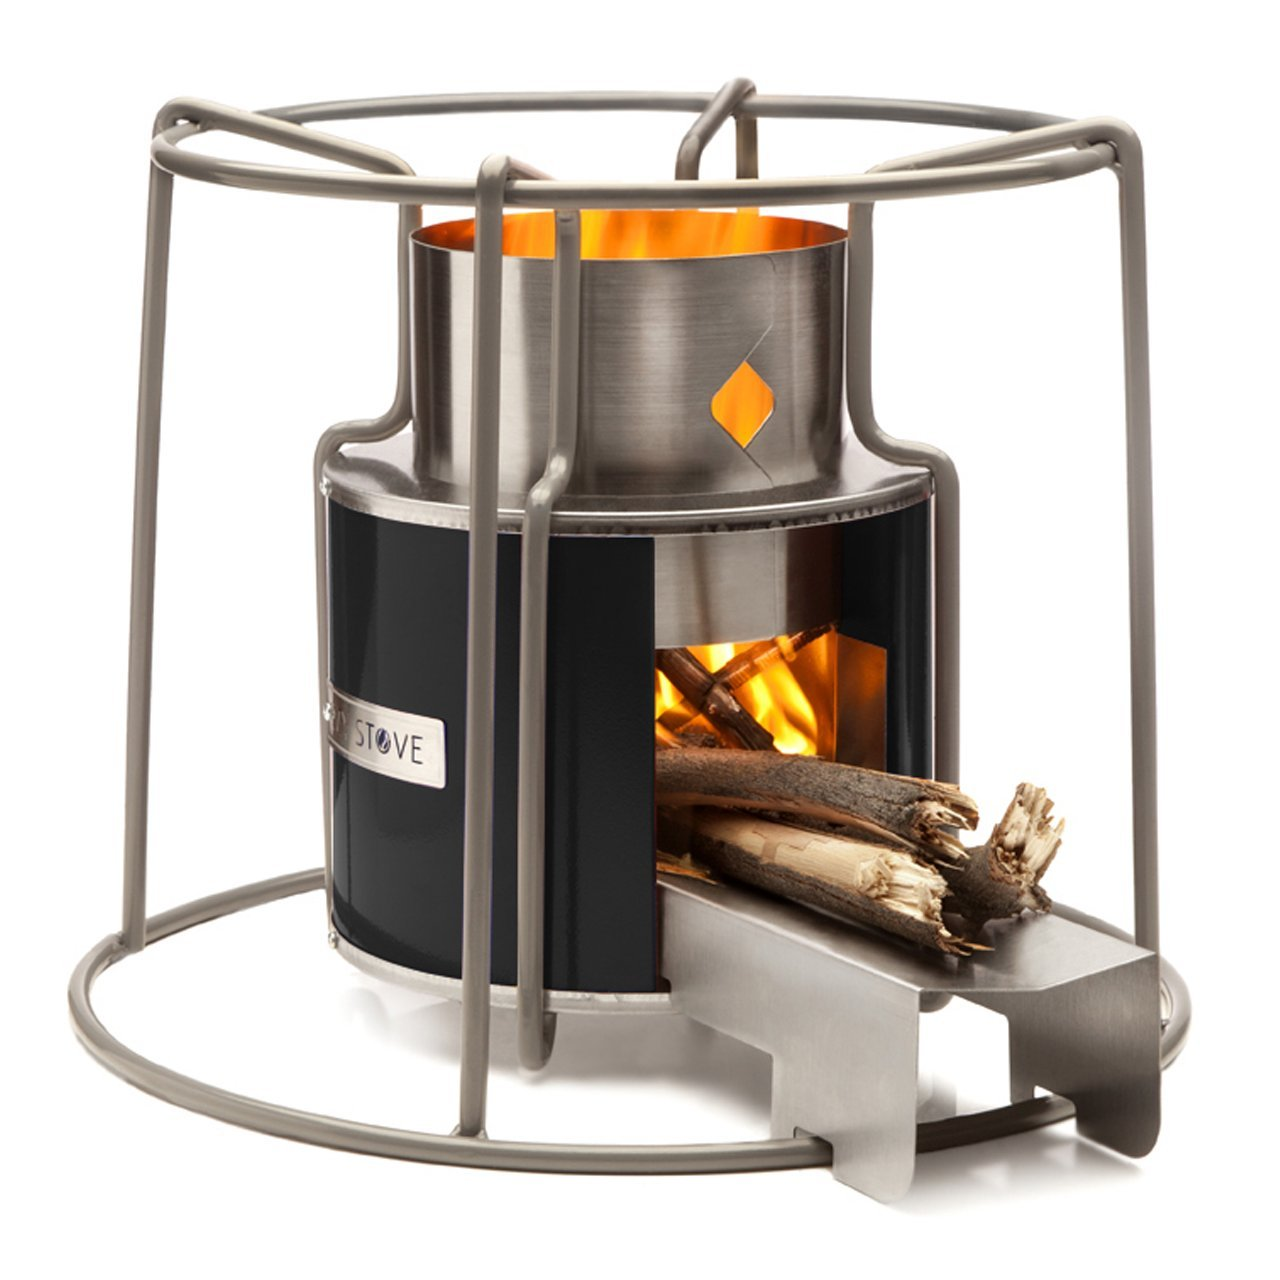 Best Rocket Stoves For Camping & Survival Enthusiasts Review 9